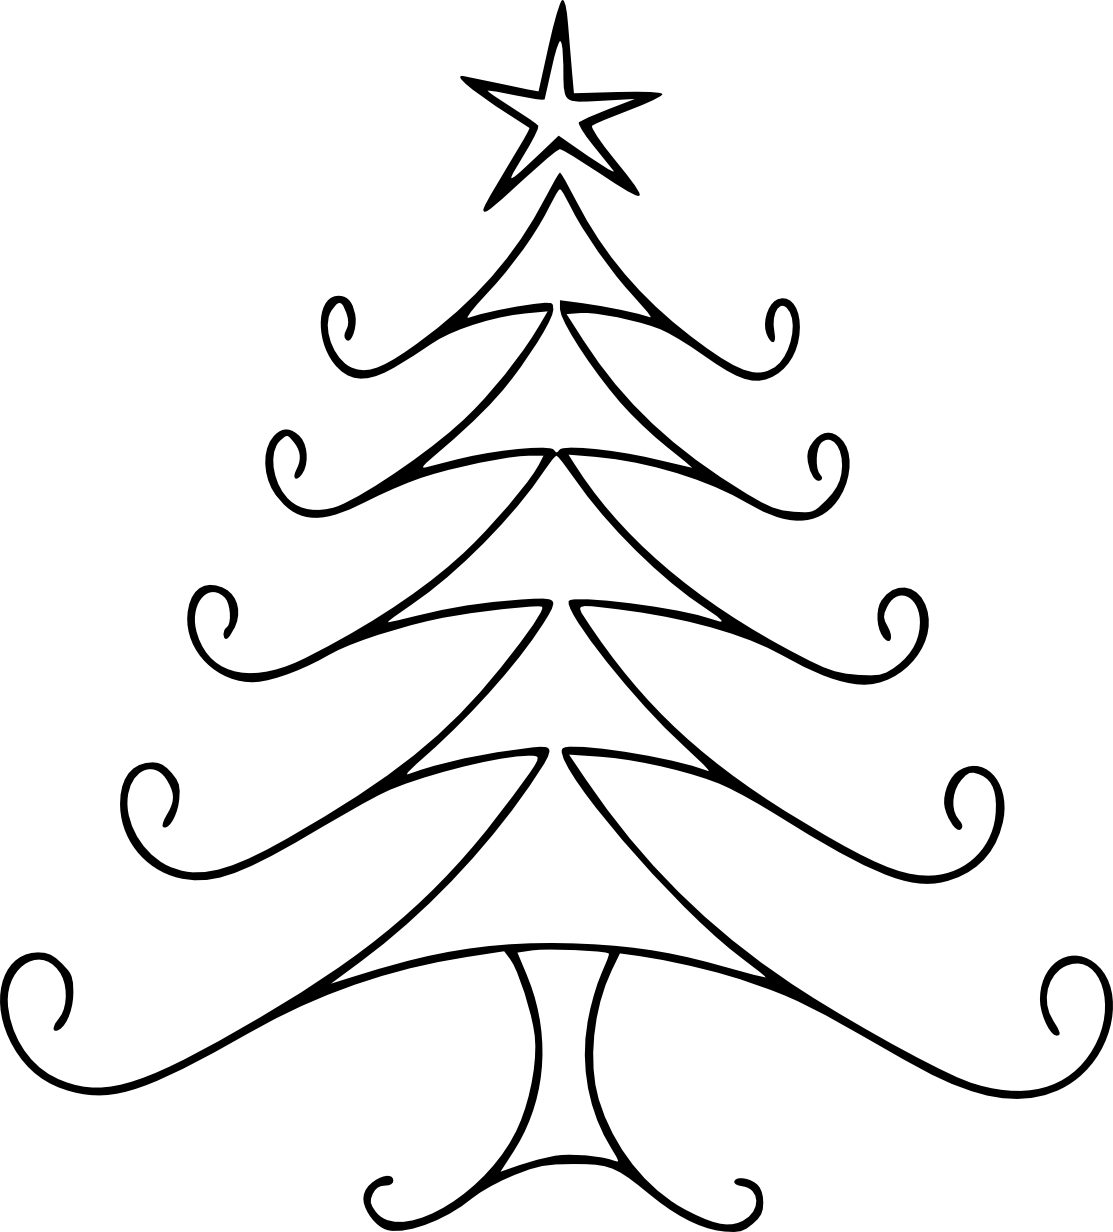 Black and white christmas wreath clipart jpg Christmas Line Drawing - Cliparts. | CRAFT - HOLIDAYS | Pinterest ... jpg